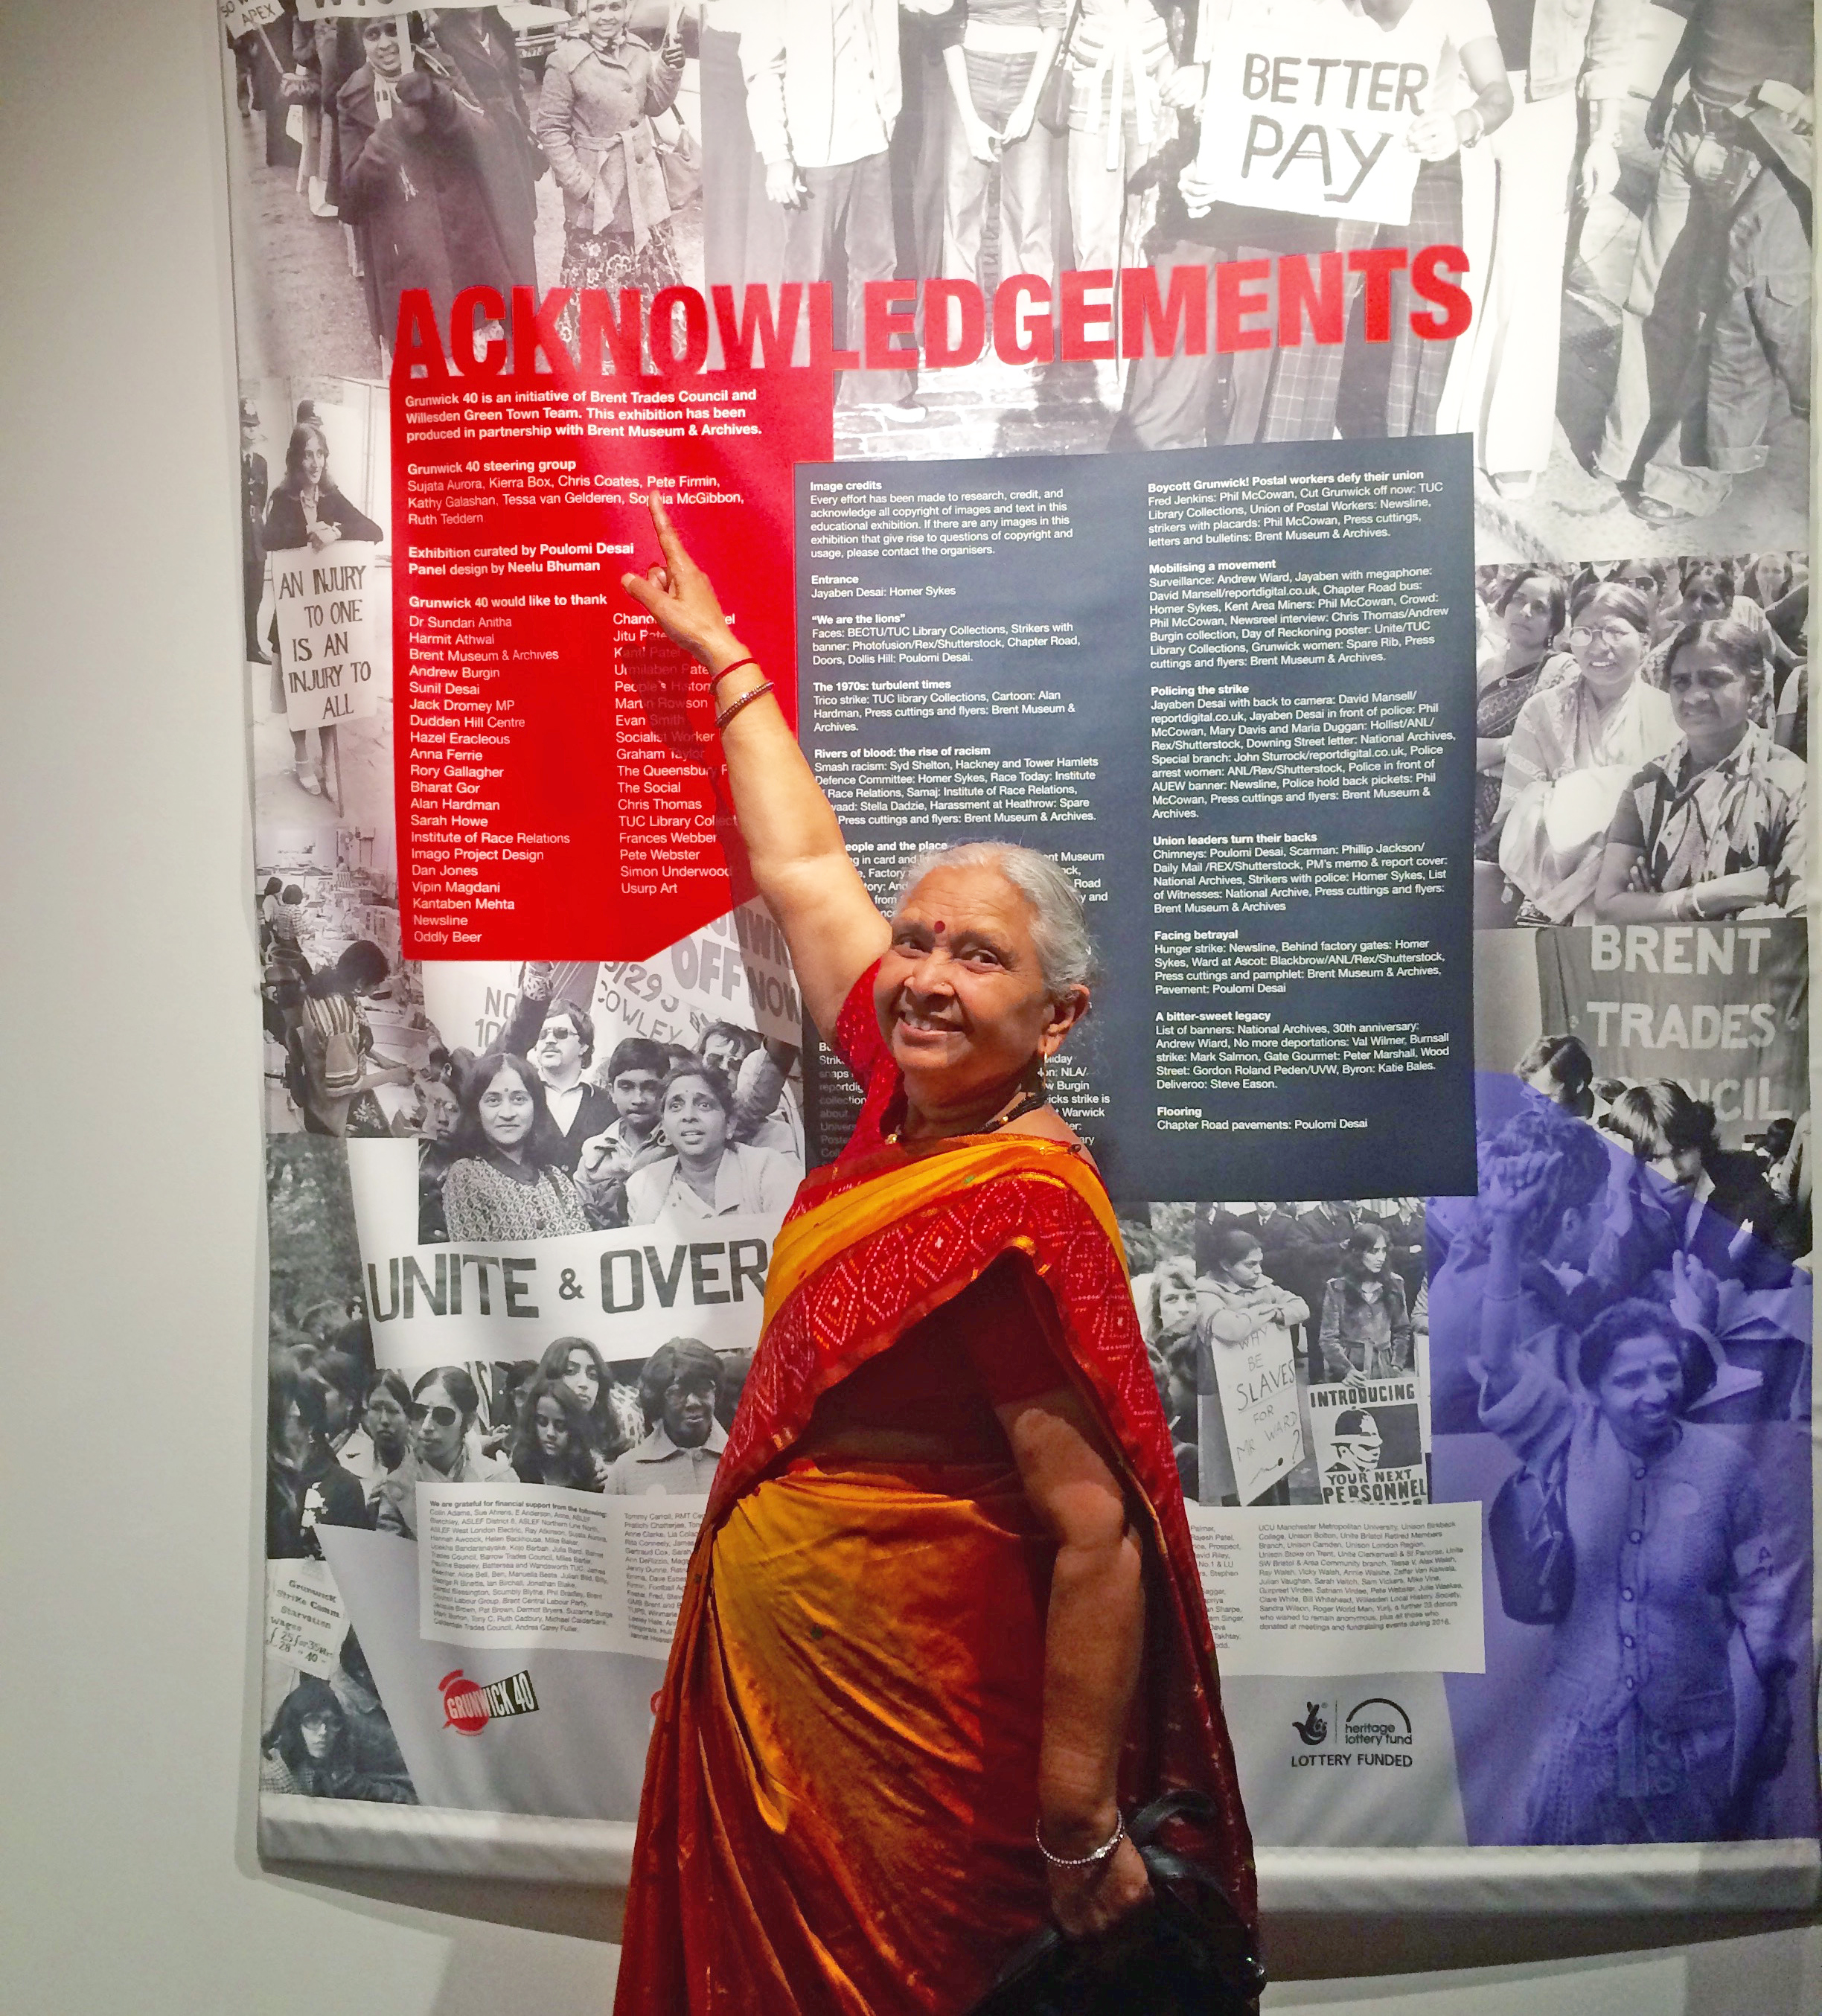 A grunwick striker pointing to an image of herself from the strike.